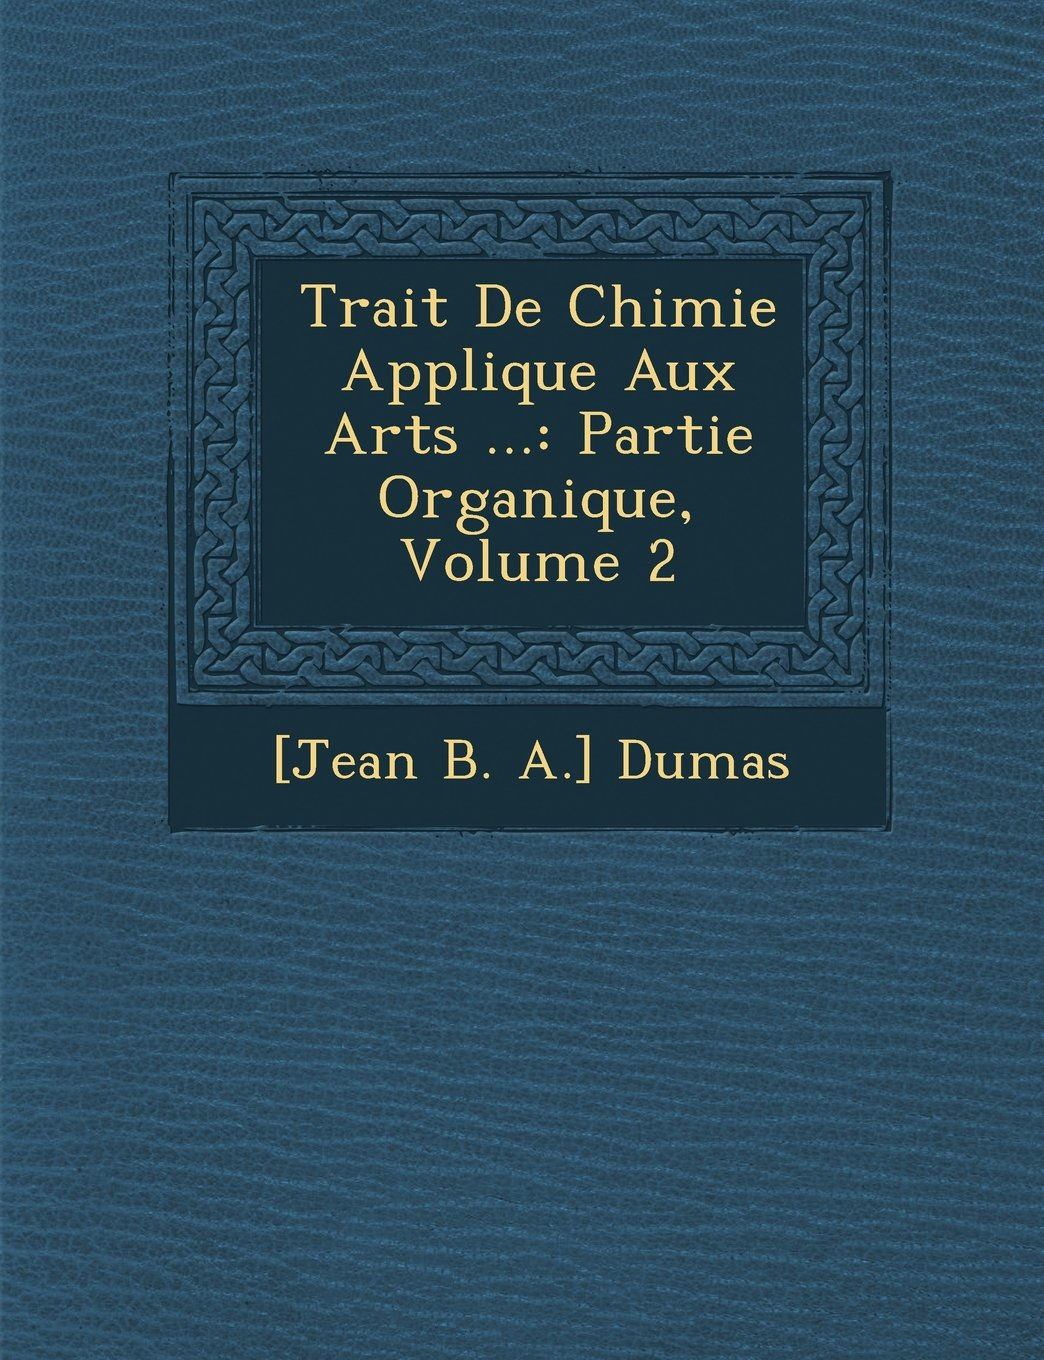 Download Trait de Chimie Appliqu E Aux Arts ...: Partie Organique, Volume 2 (French Edition) pdf epub